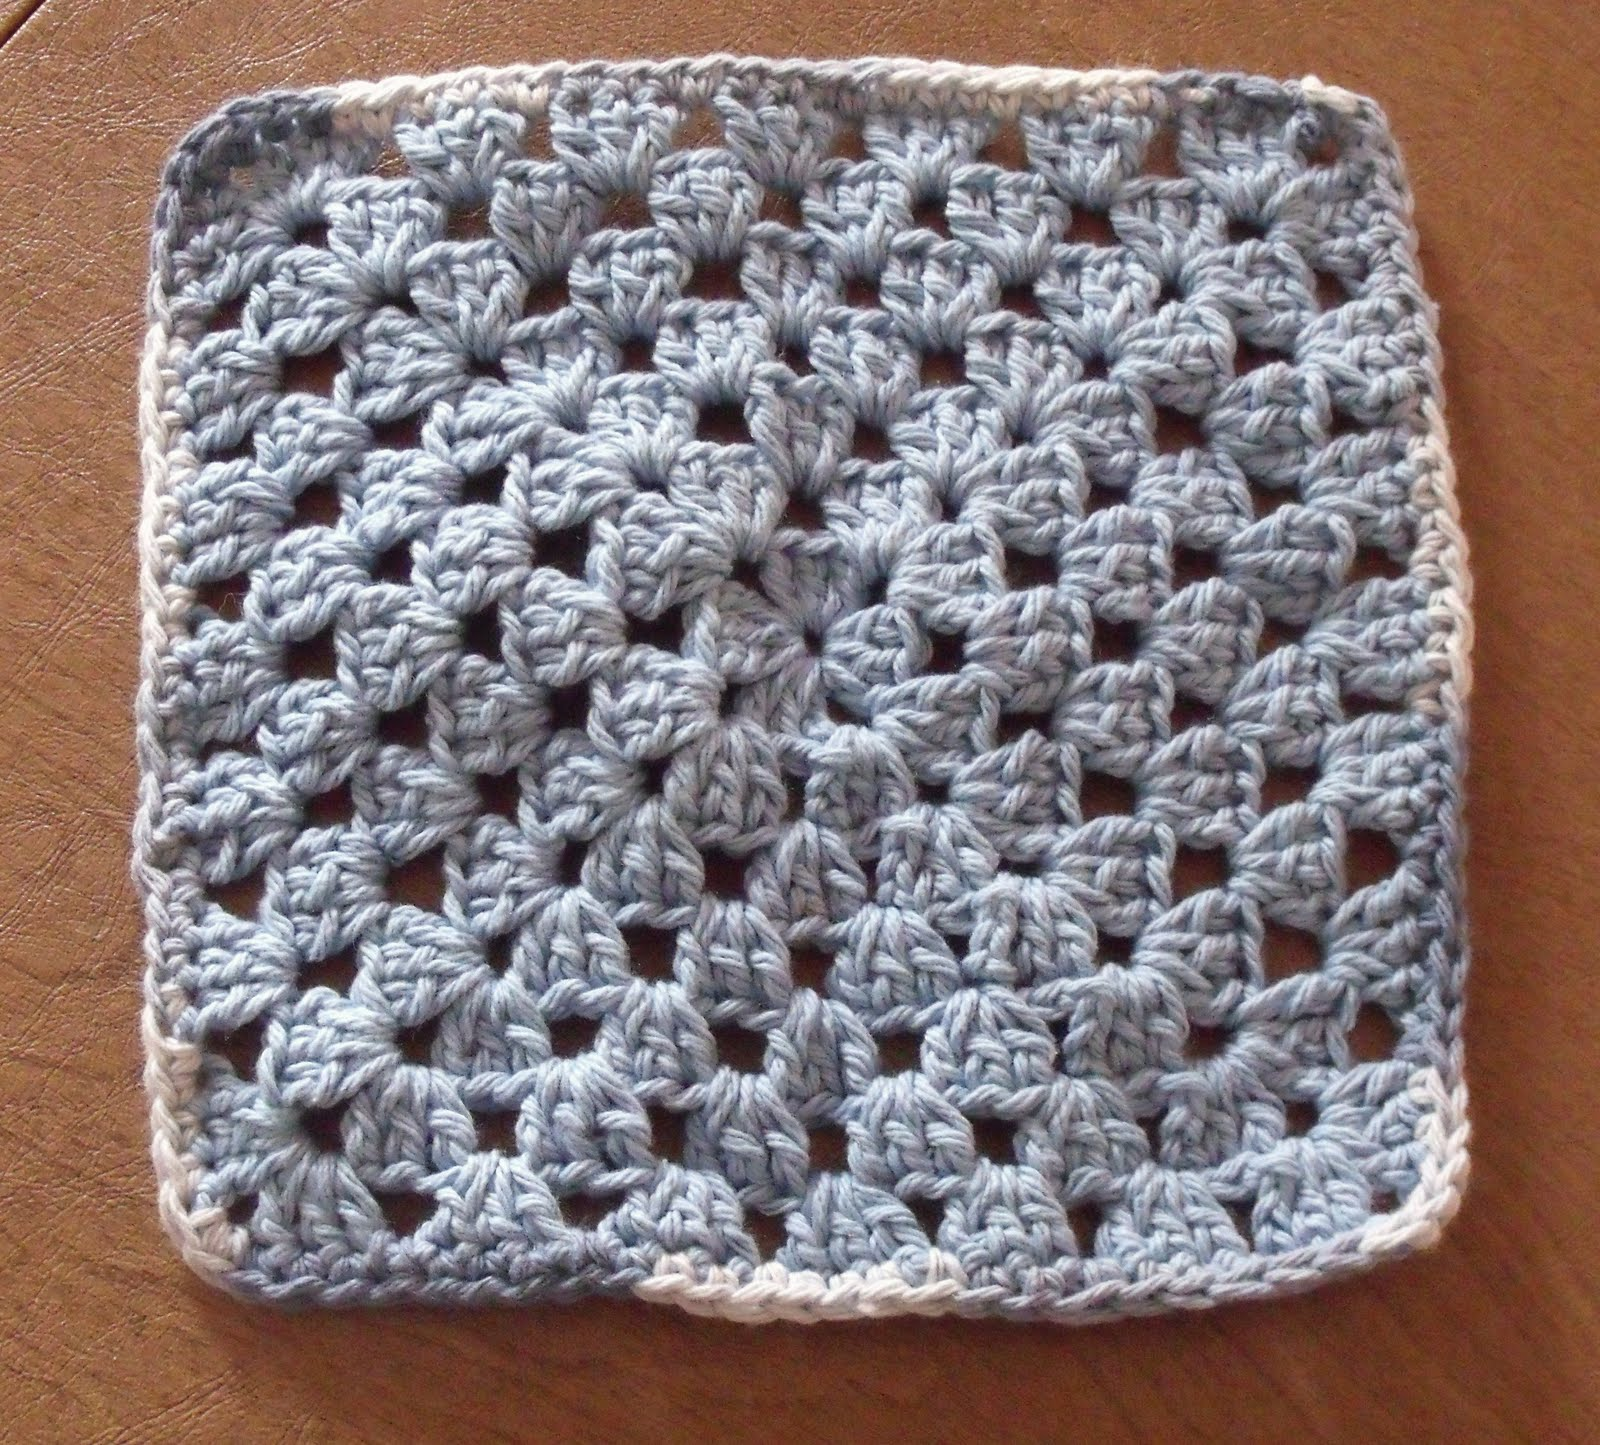 Crochet Granny Square Dishcloth Pattern : Baking, Crocheting and Sewing, Oh My!: Crochet Granny ...